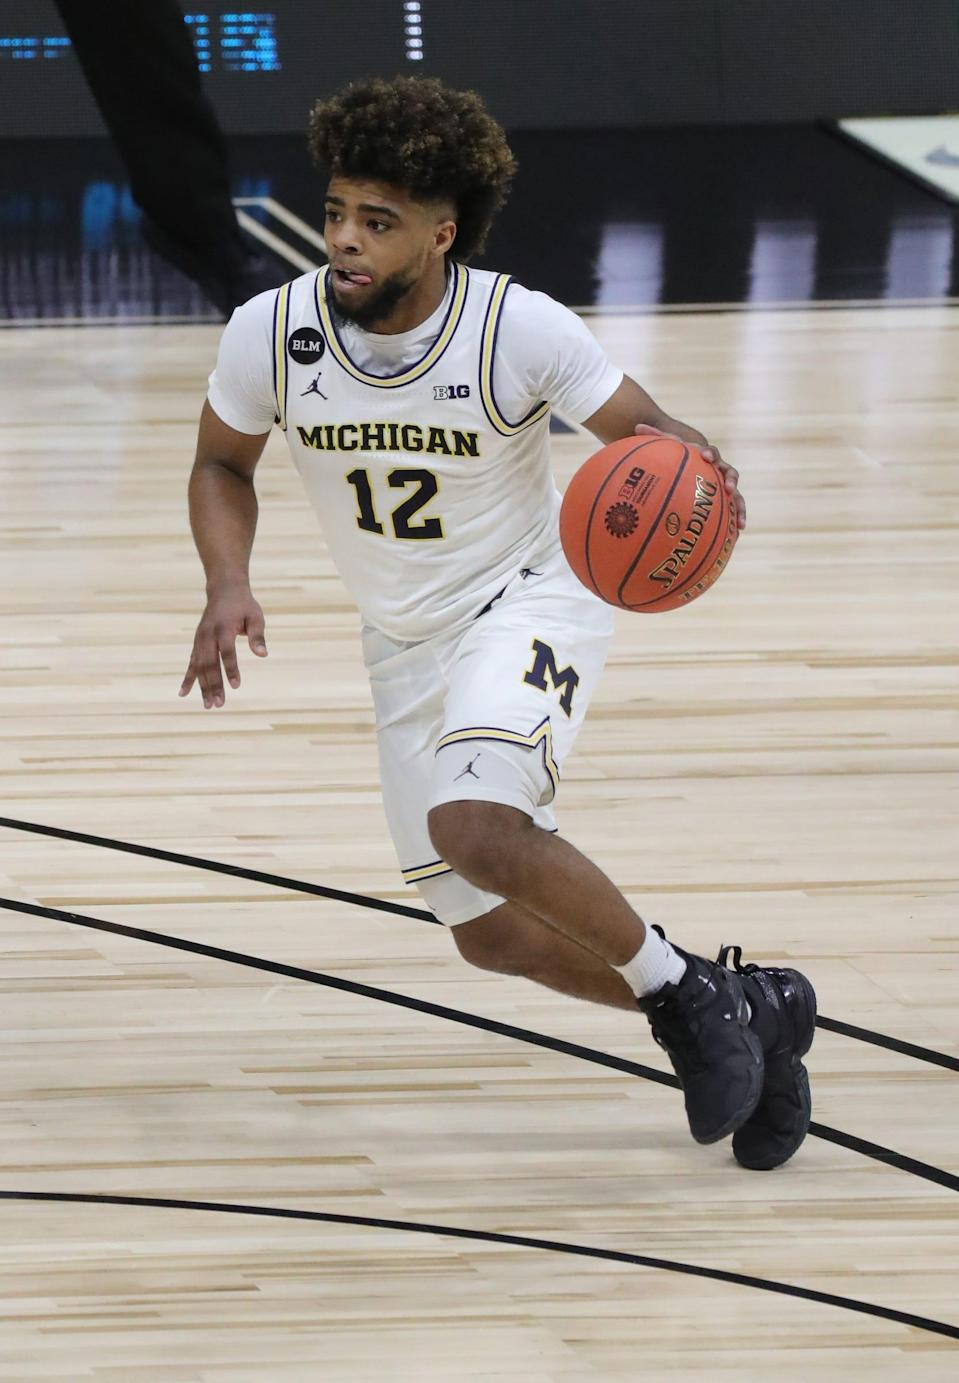 Michigan guard Mike Smith drives against Maryland during Wolverines' 79-66 win in the Big Ten tournament quarterfinals Friday, March 12, 2021 at Lucas Oil Stadium in Indianapolis.